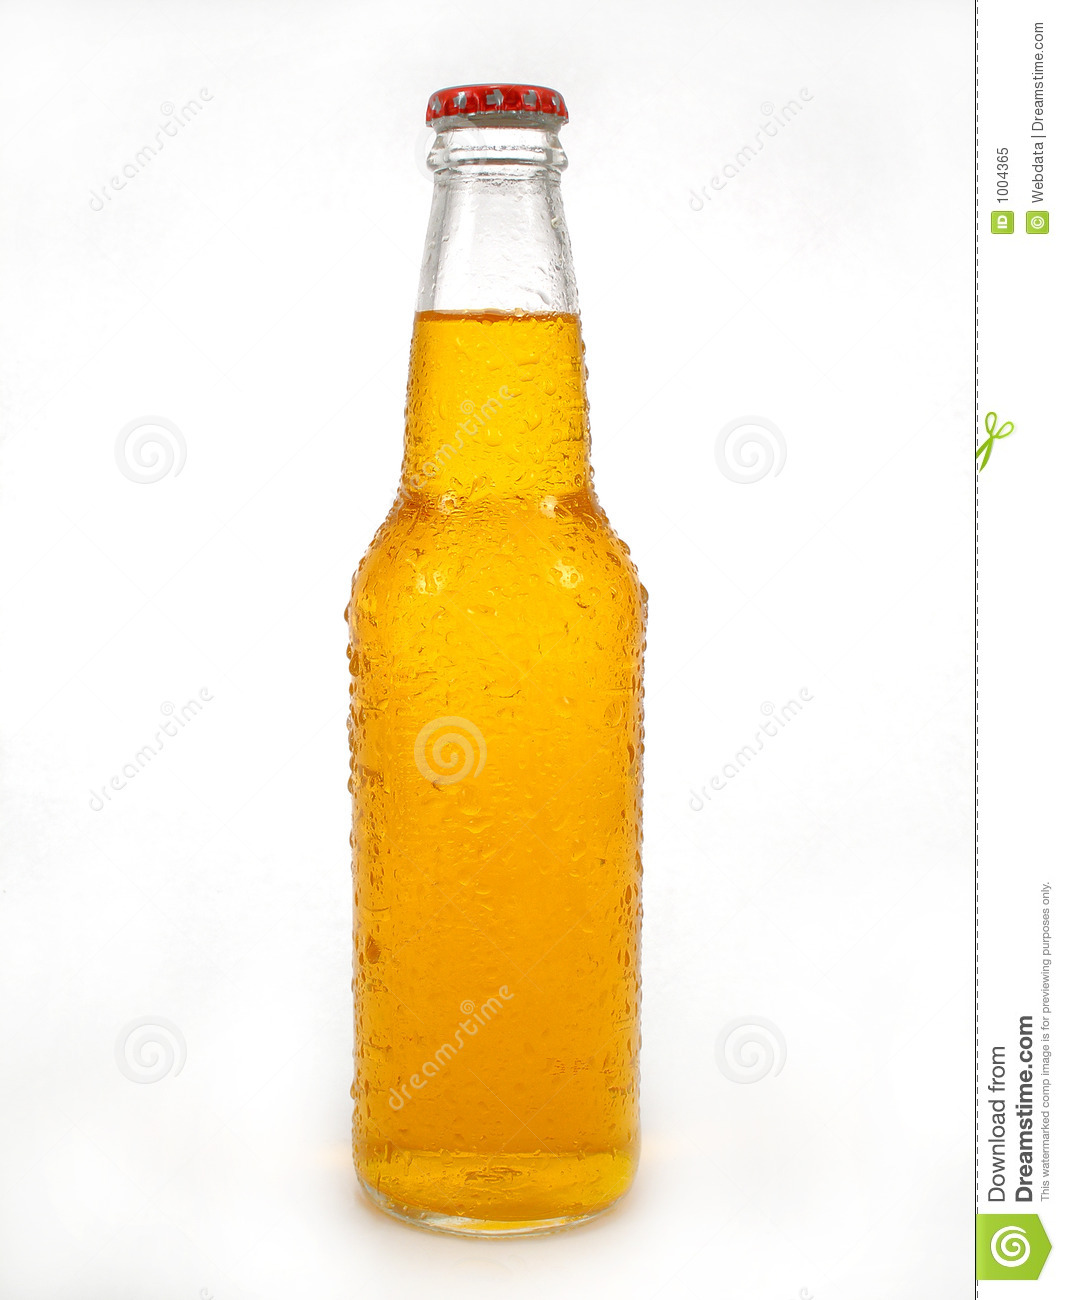 Beer Bottle Royalty Free Stock Photo - Image: 1004365